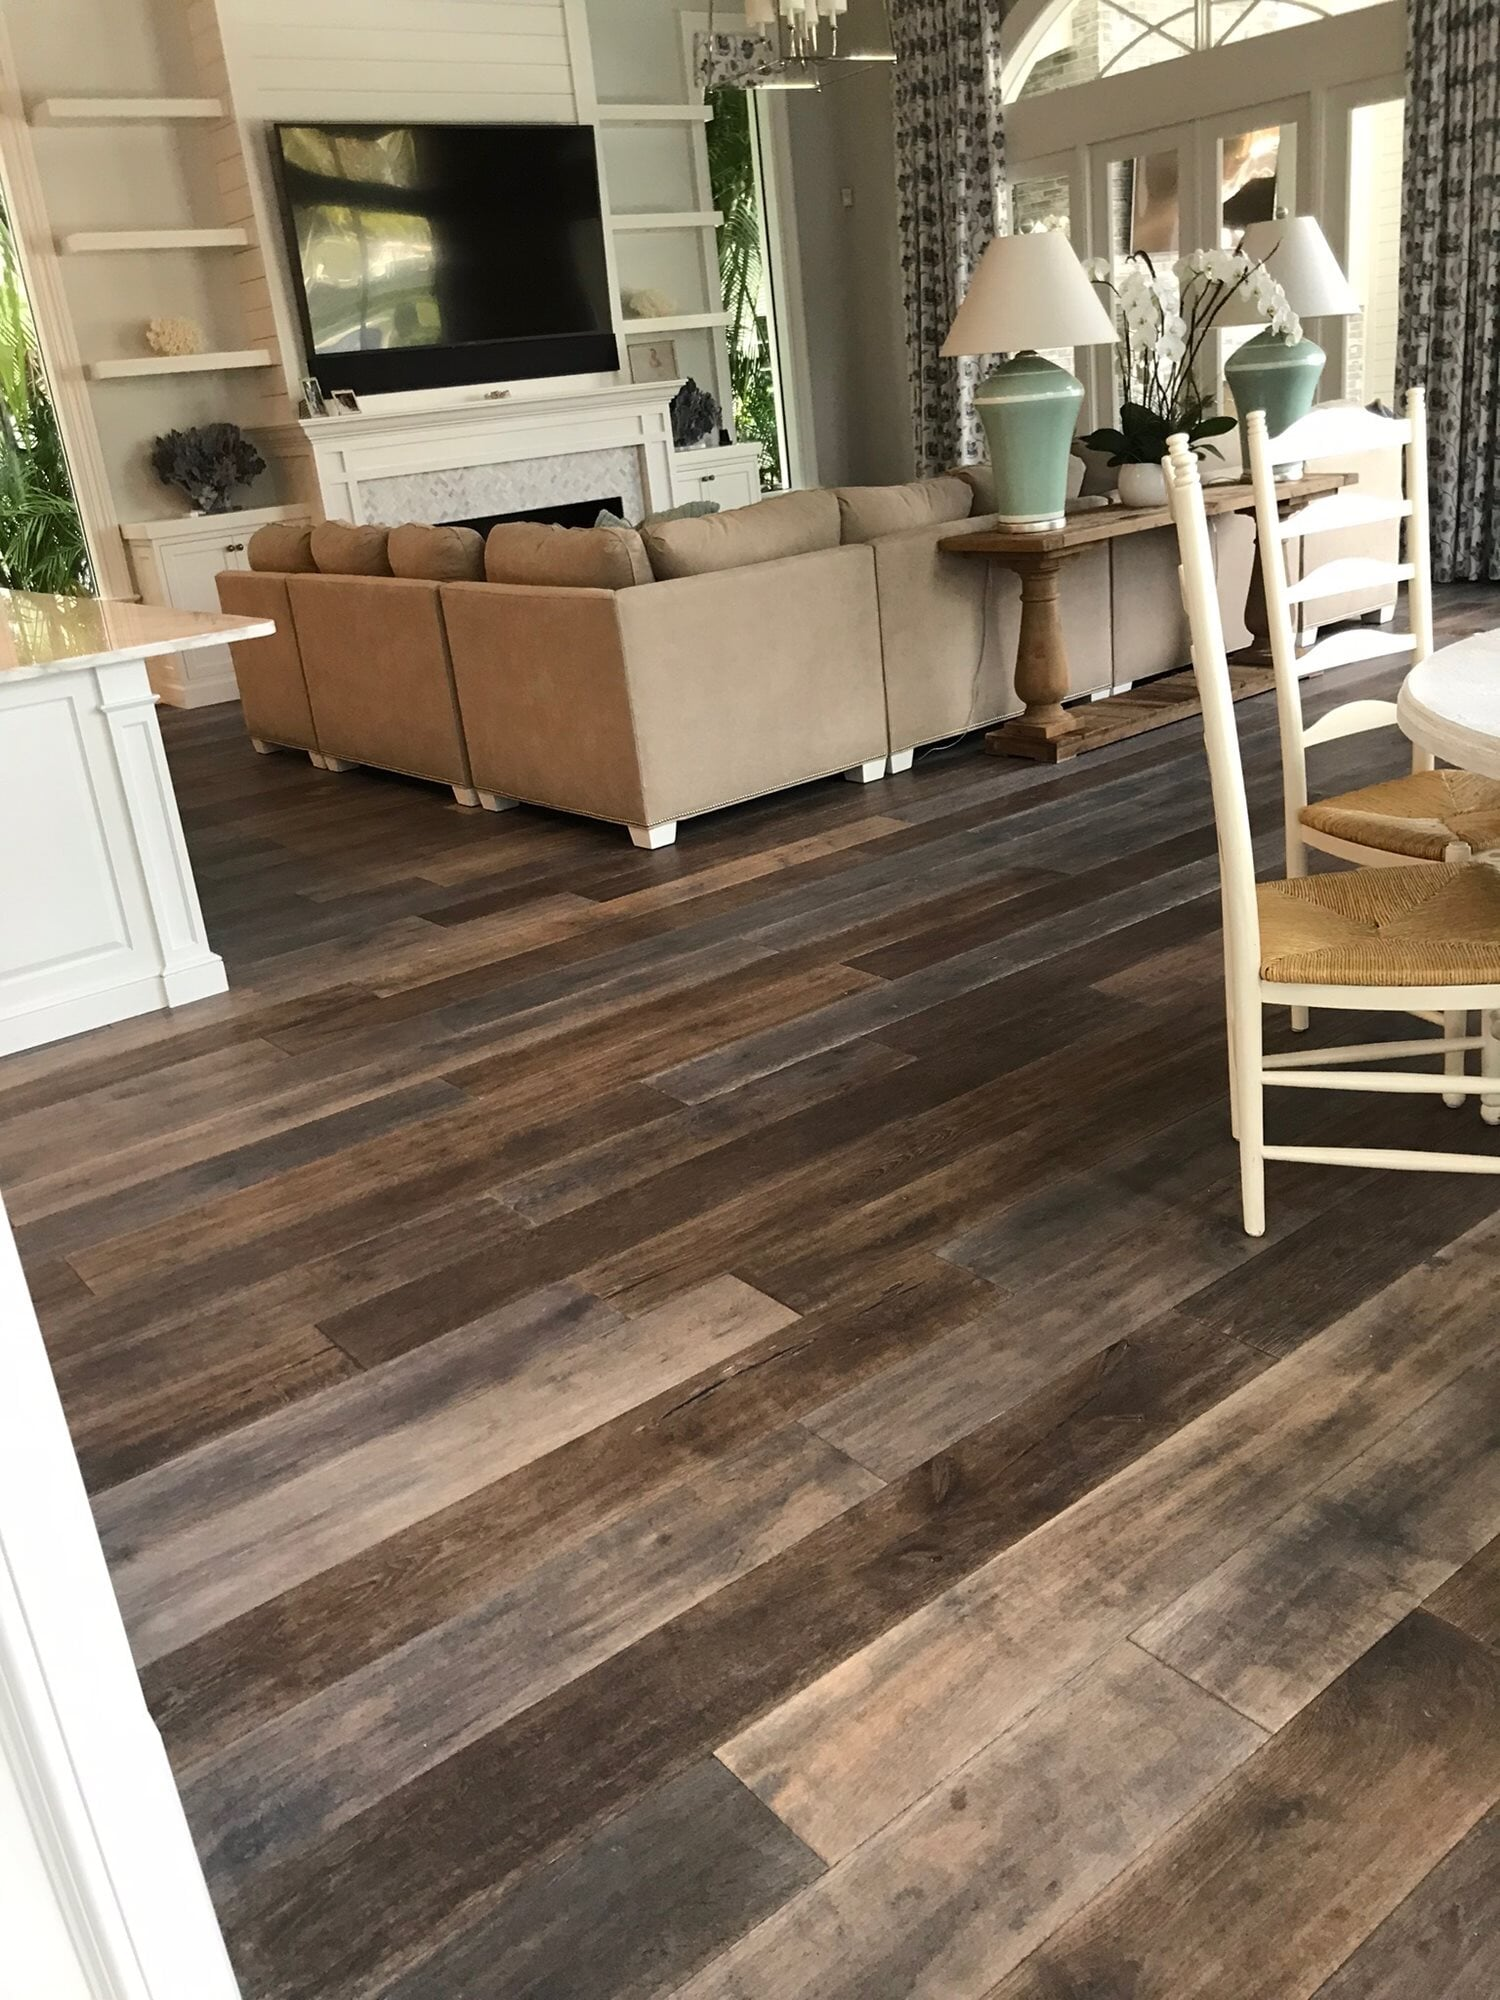 Multi tone wood flooring in Palm Beach Gardens, FL from Floors For You Kitchen & Bath